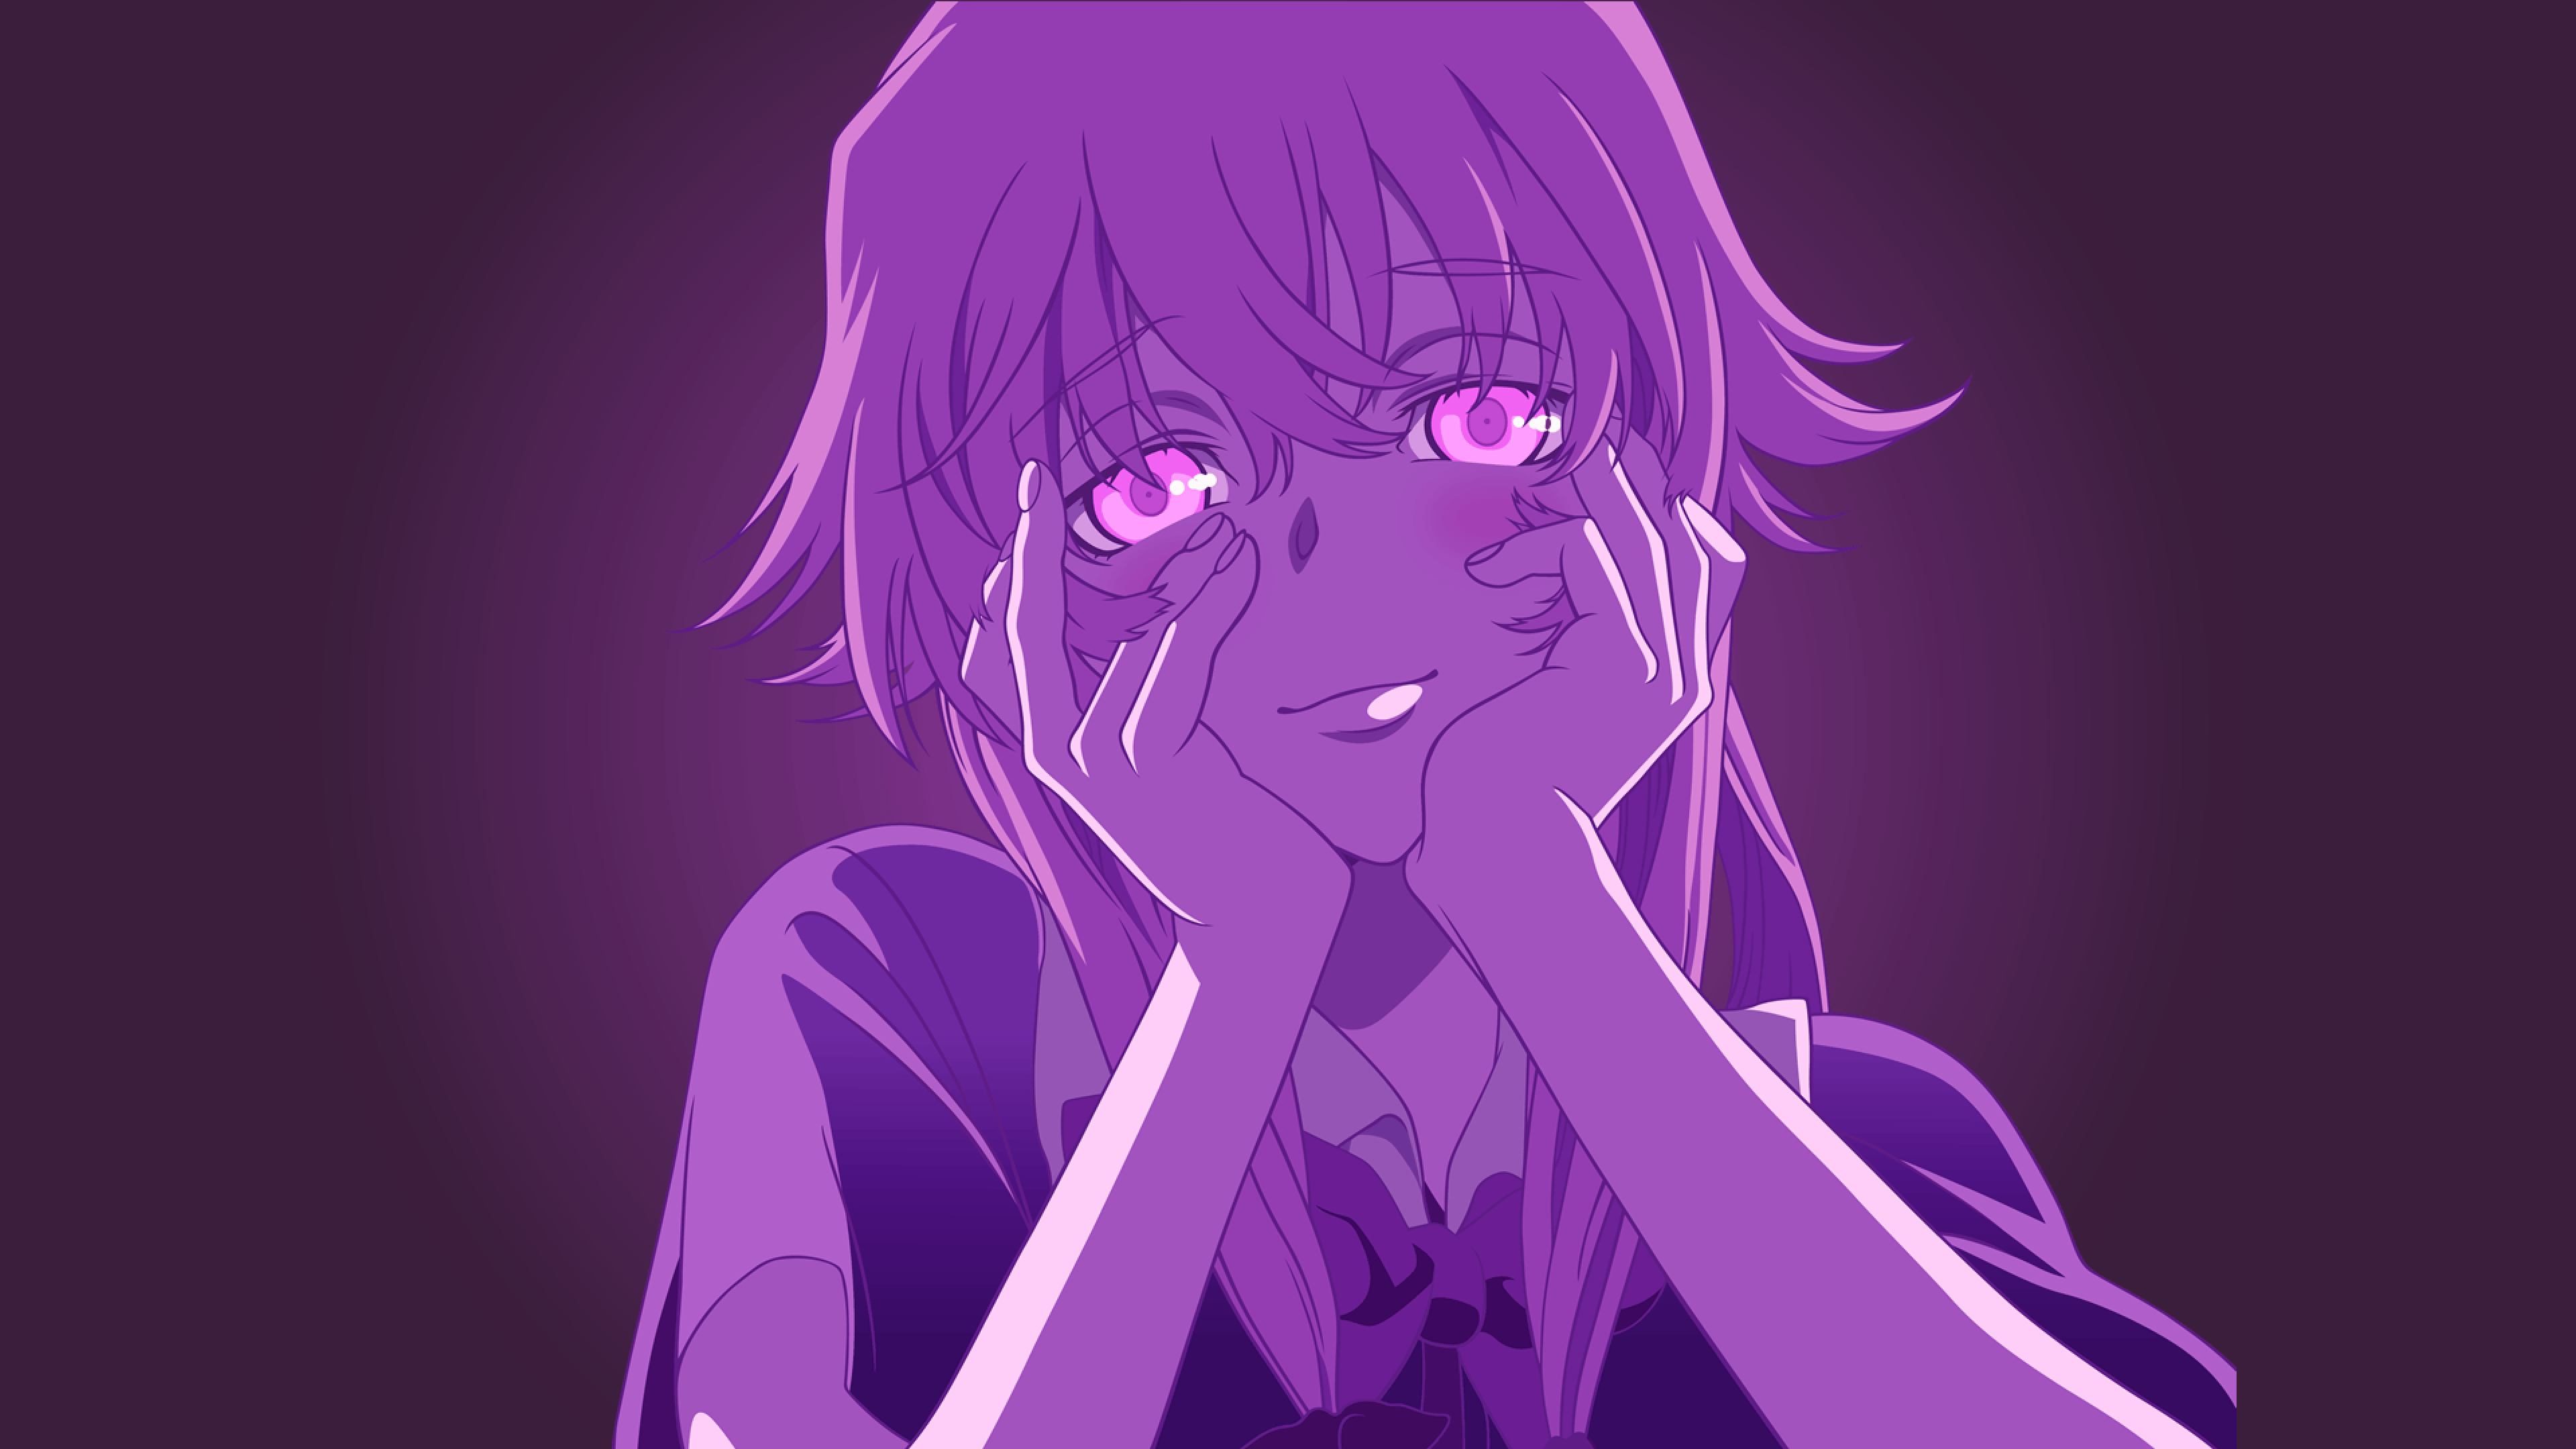 Gasai Yuno Anime Girls Yandere Mirai Nikki HD Wallpapers